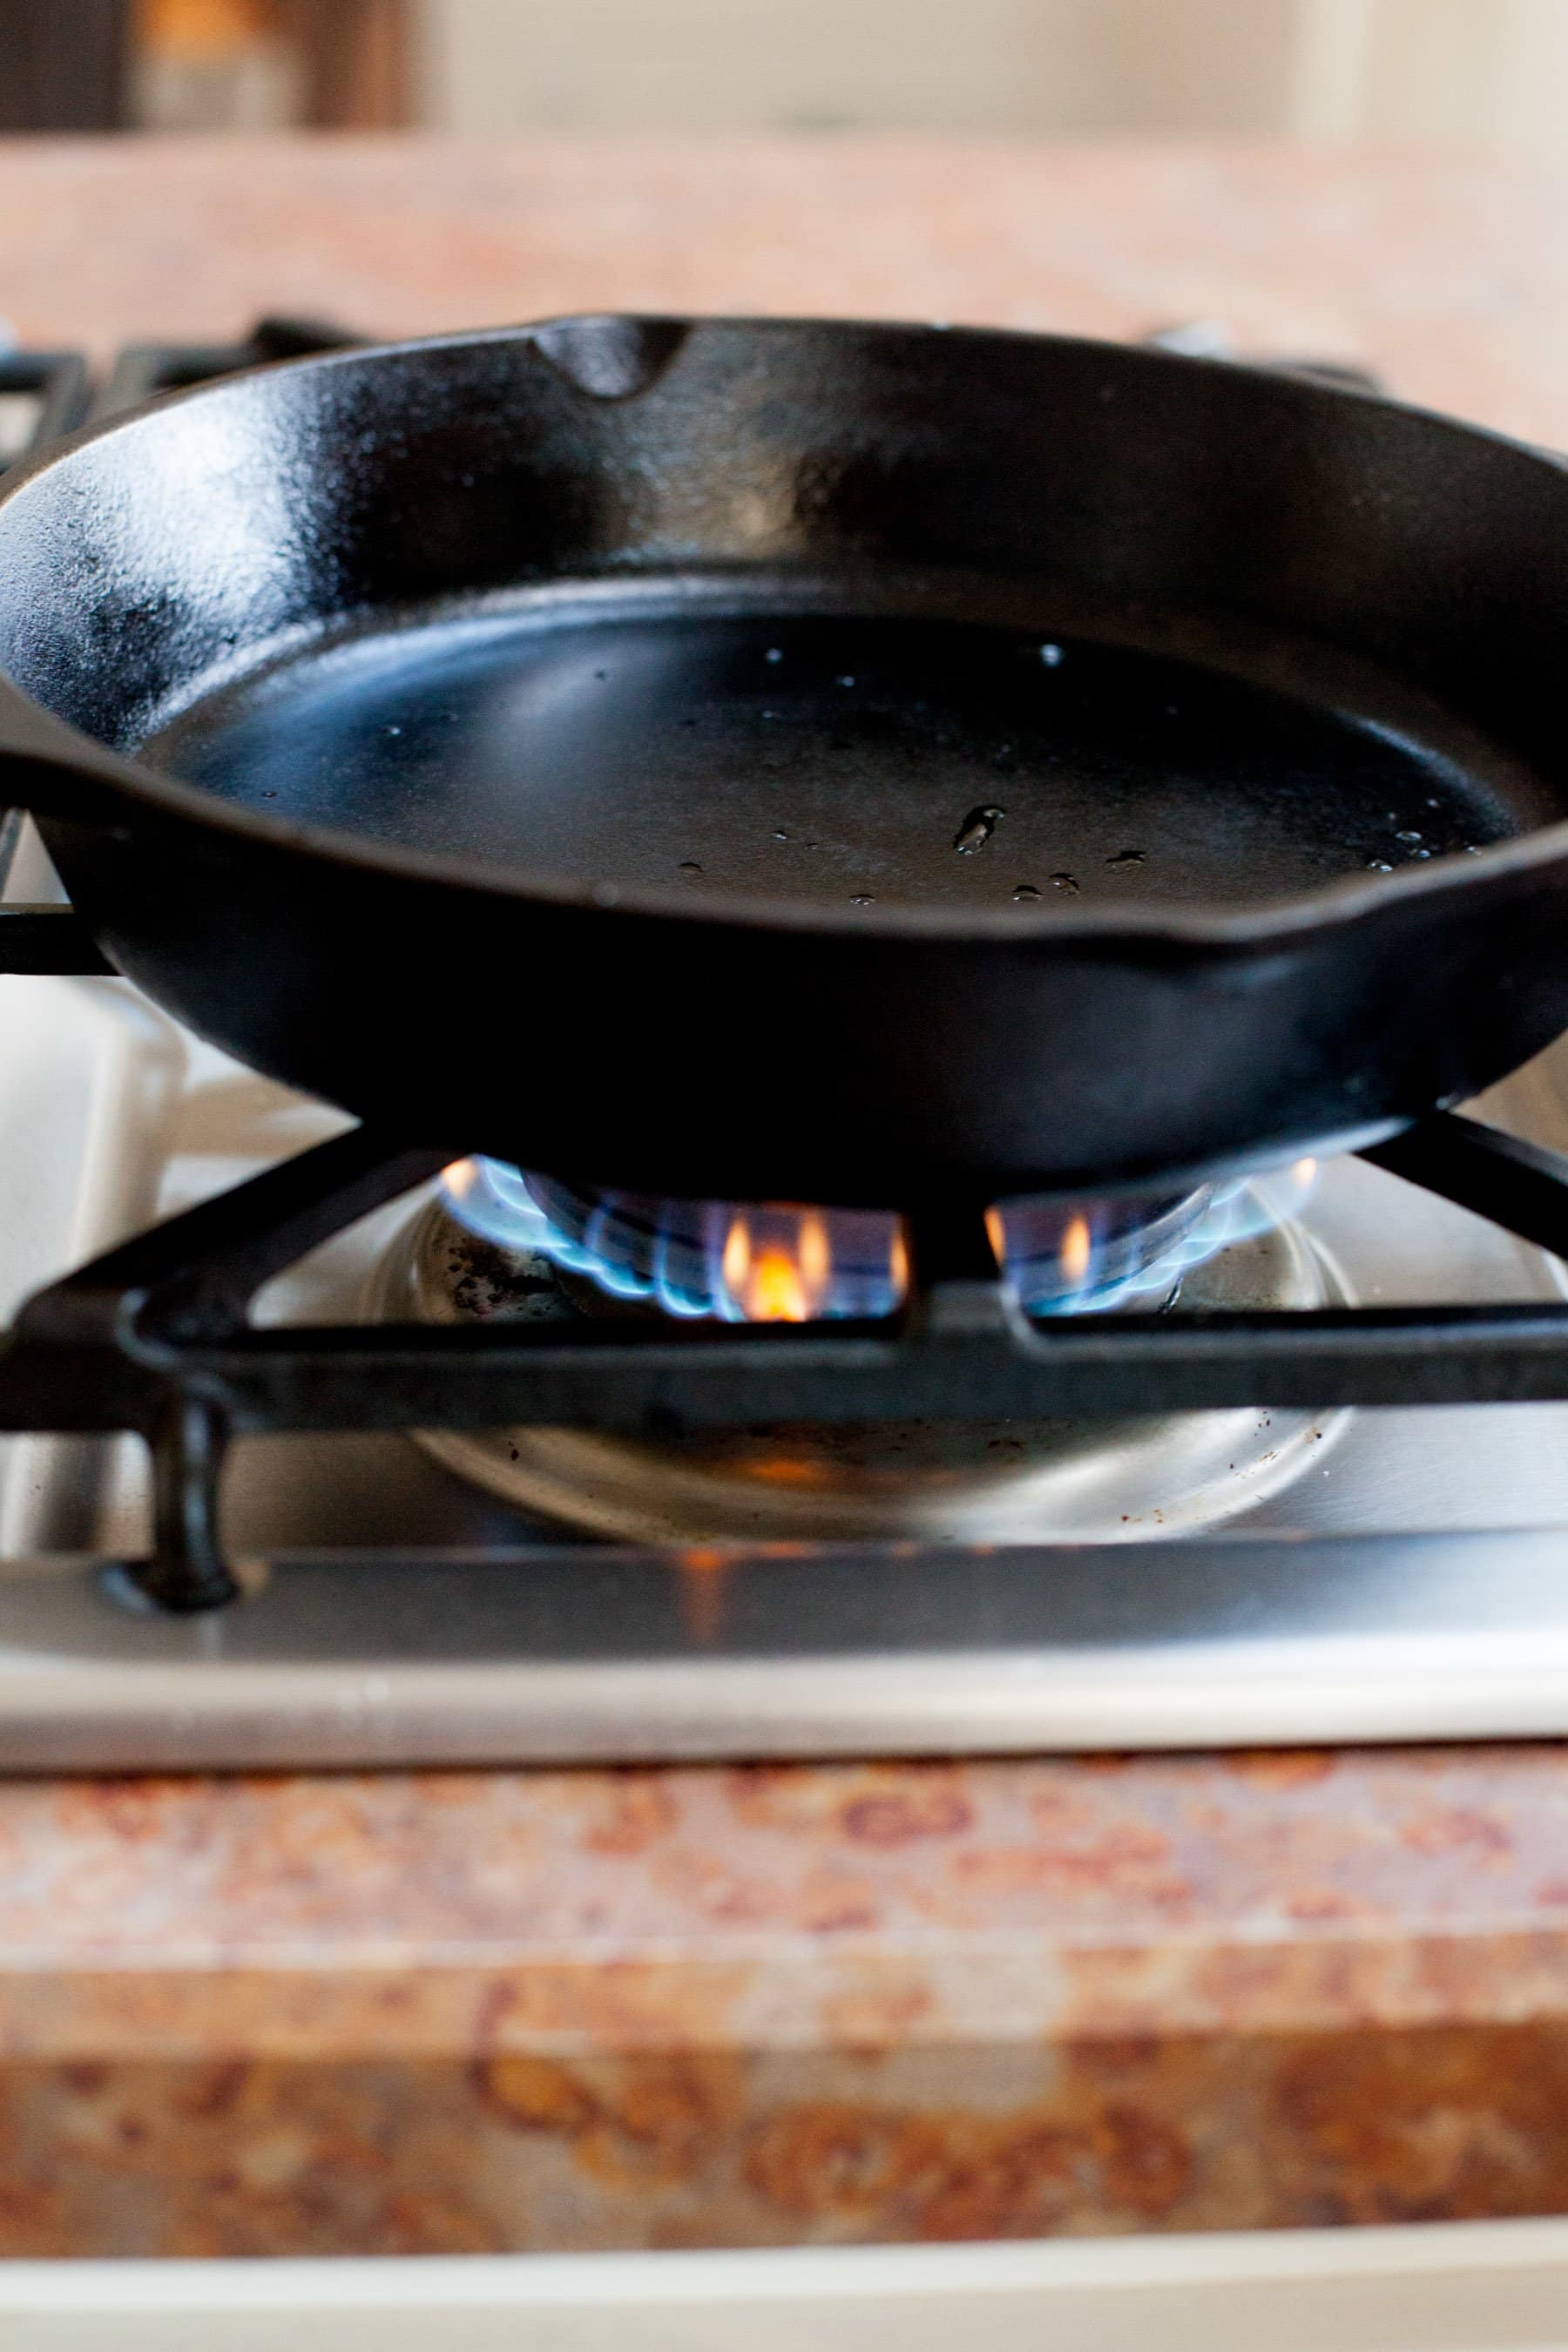 Skillet on Stove